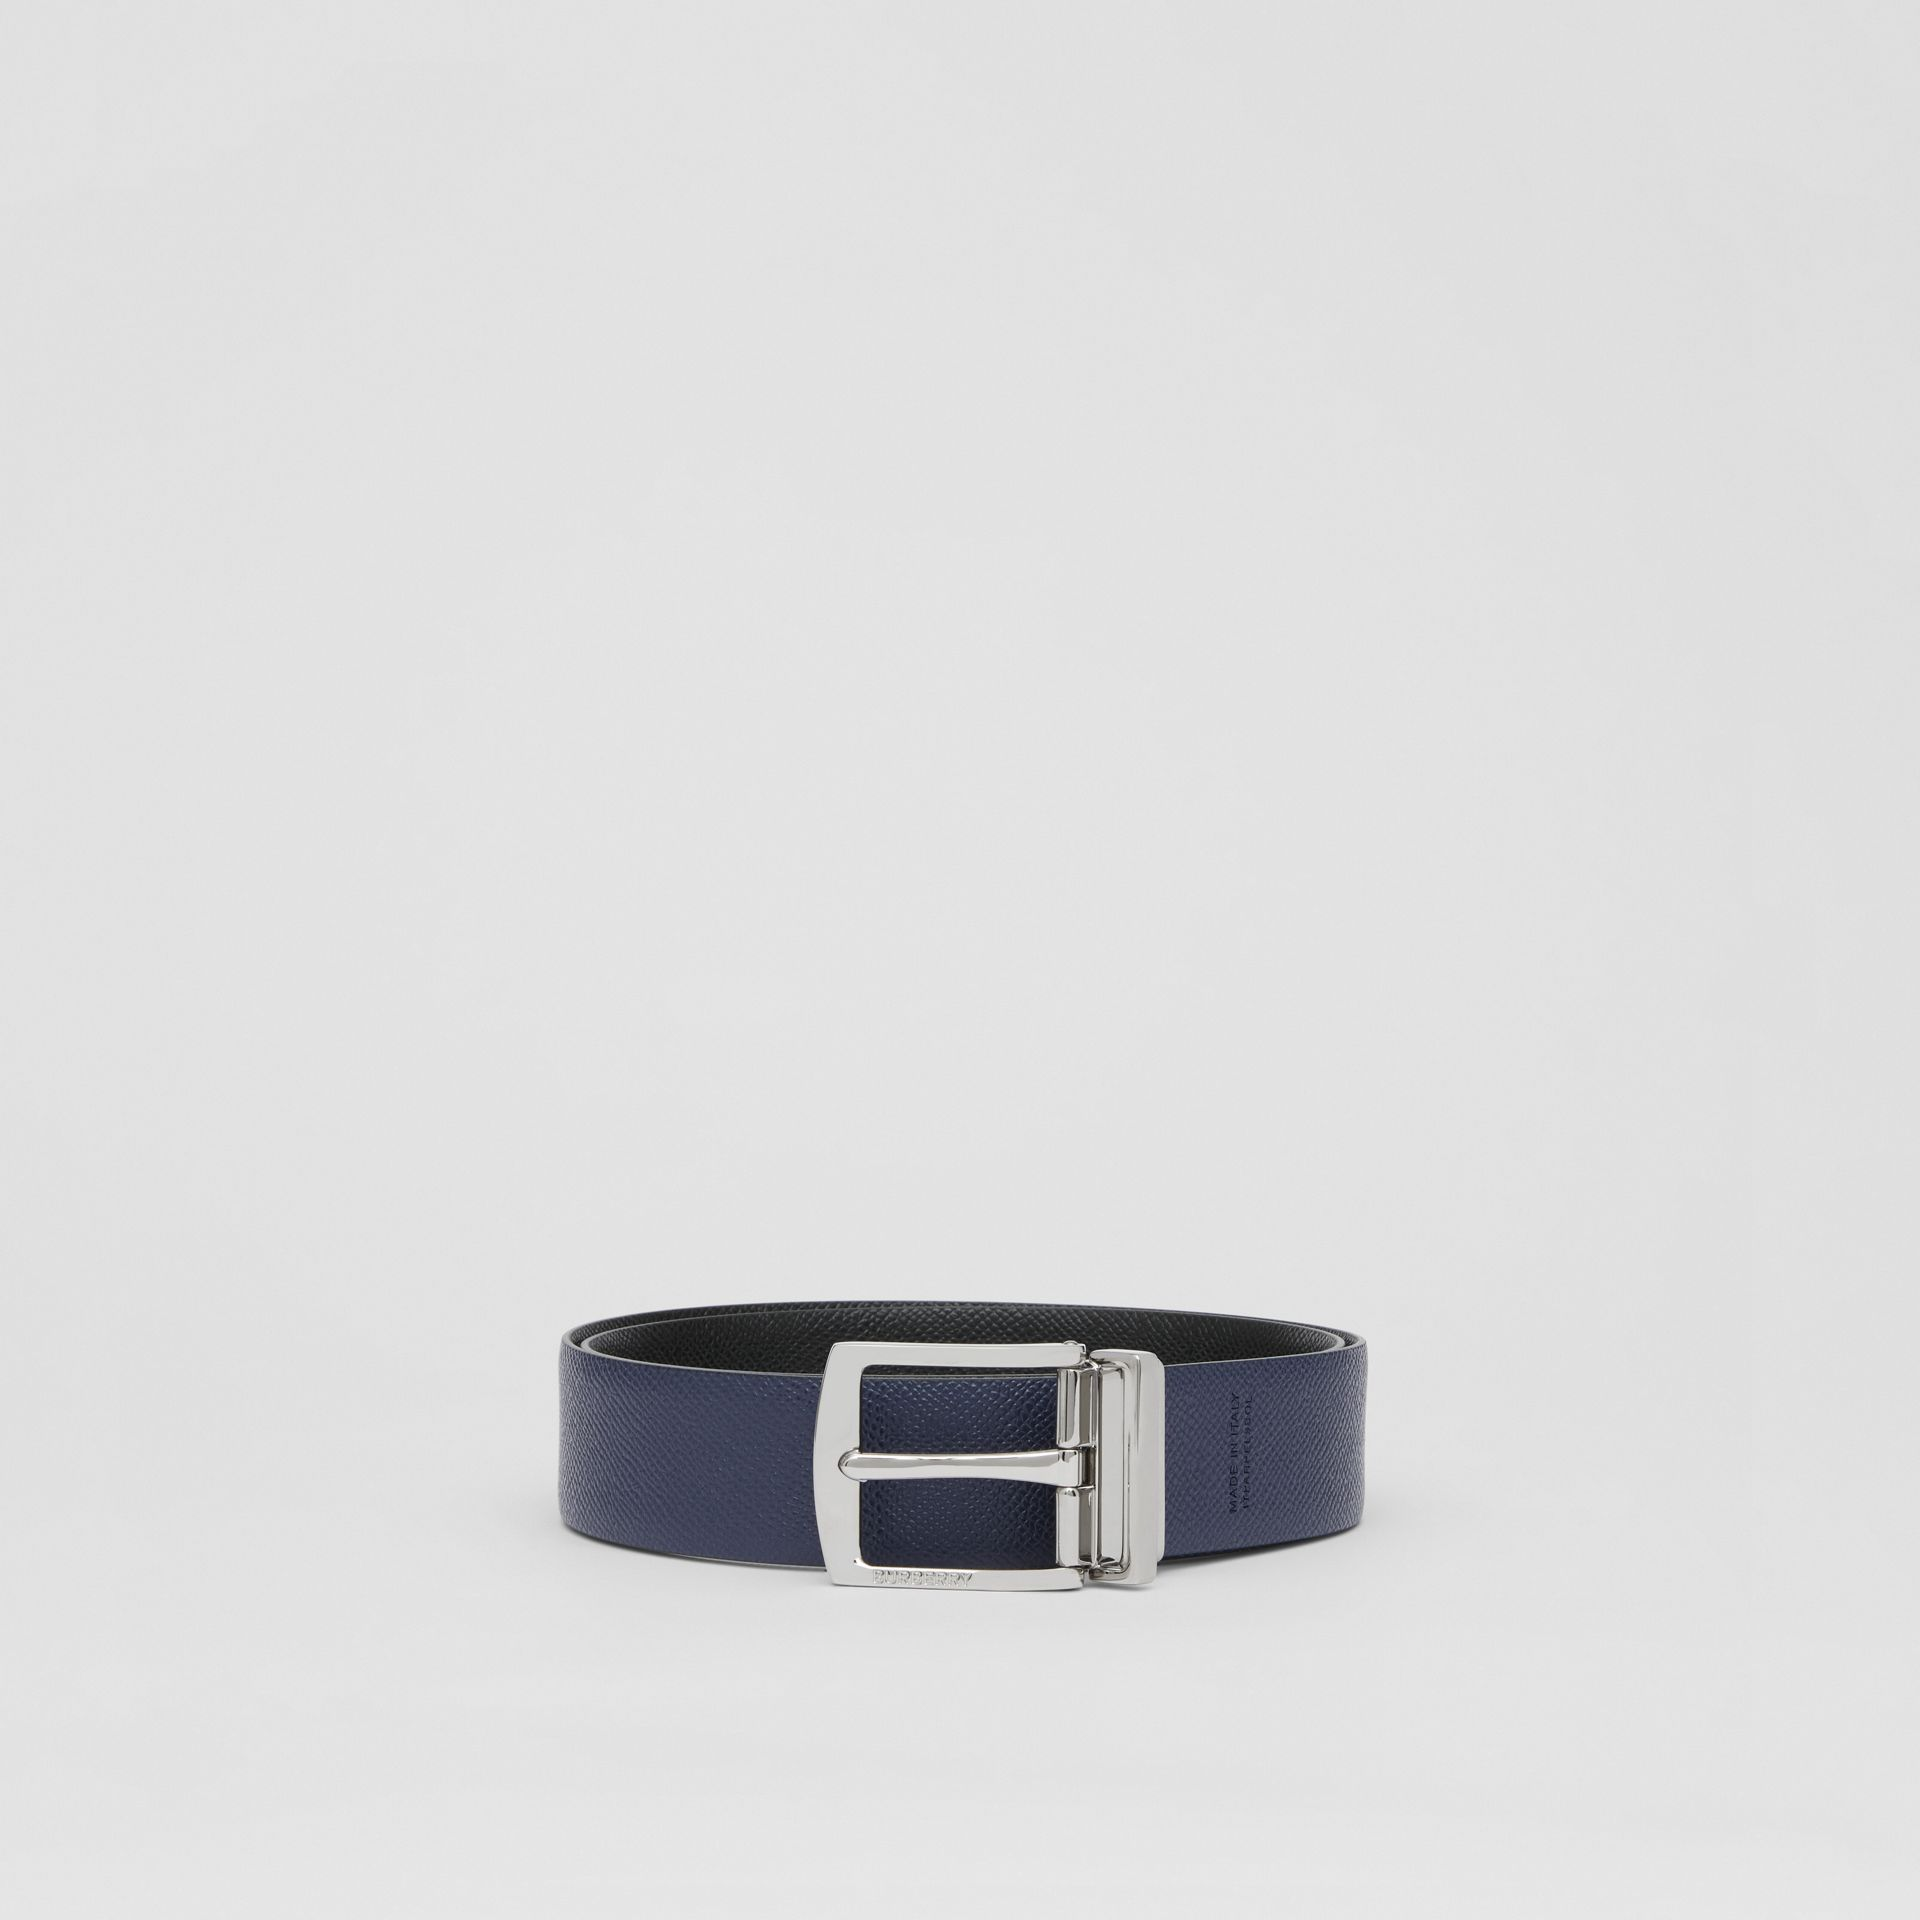 Reversible Grainy Leather Belt in Black/navy - Men | Burberry Canada - gallery image 5